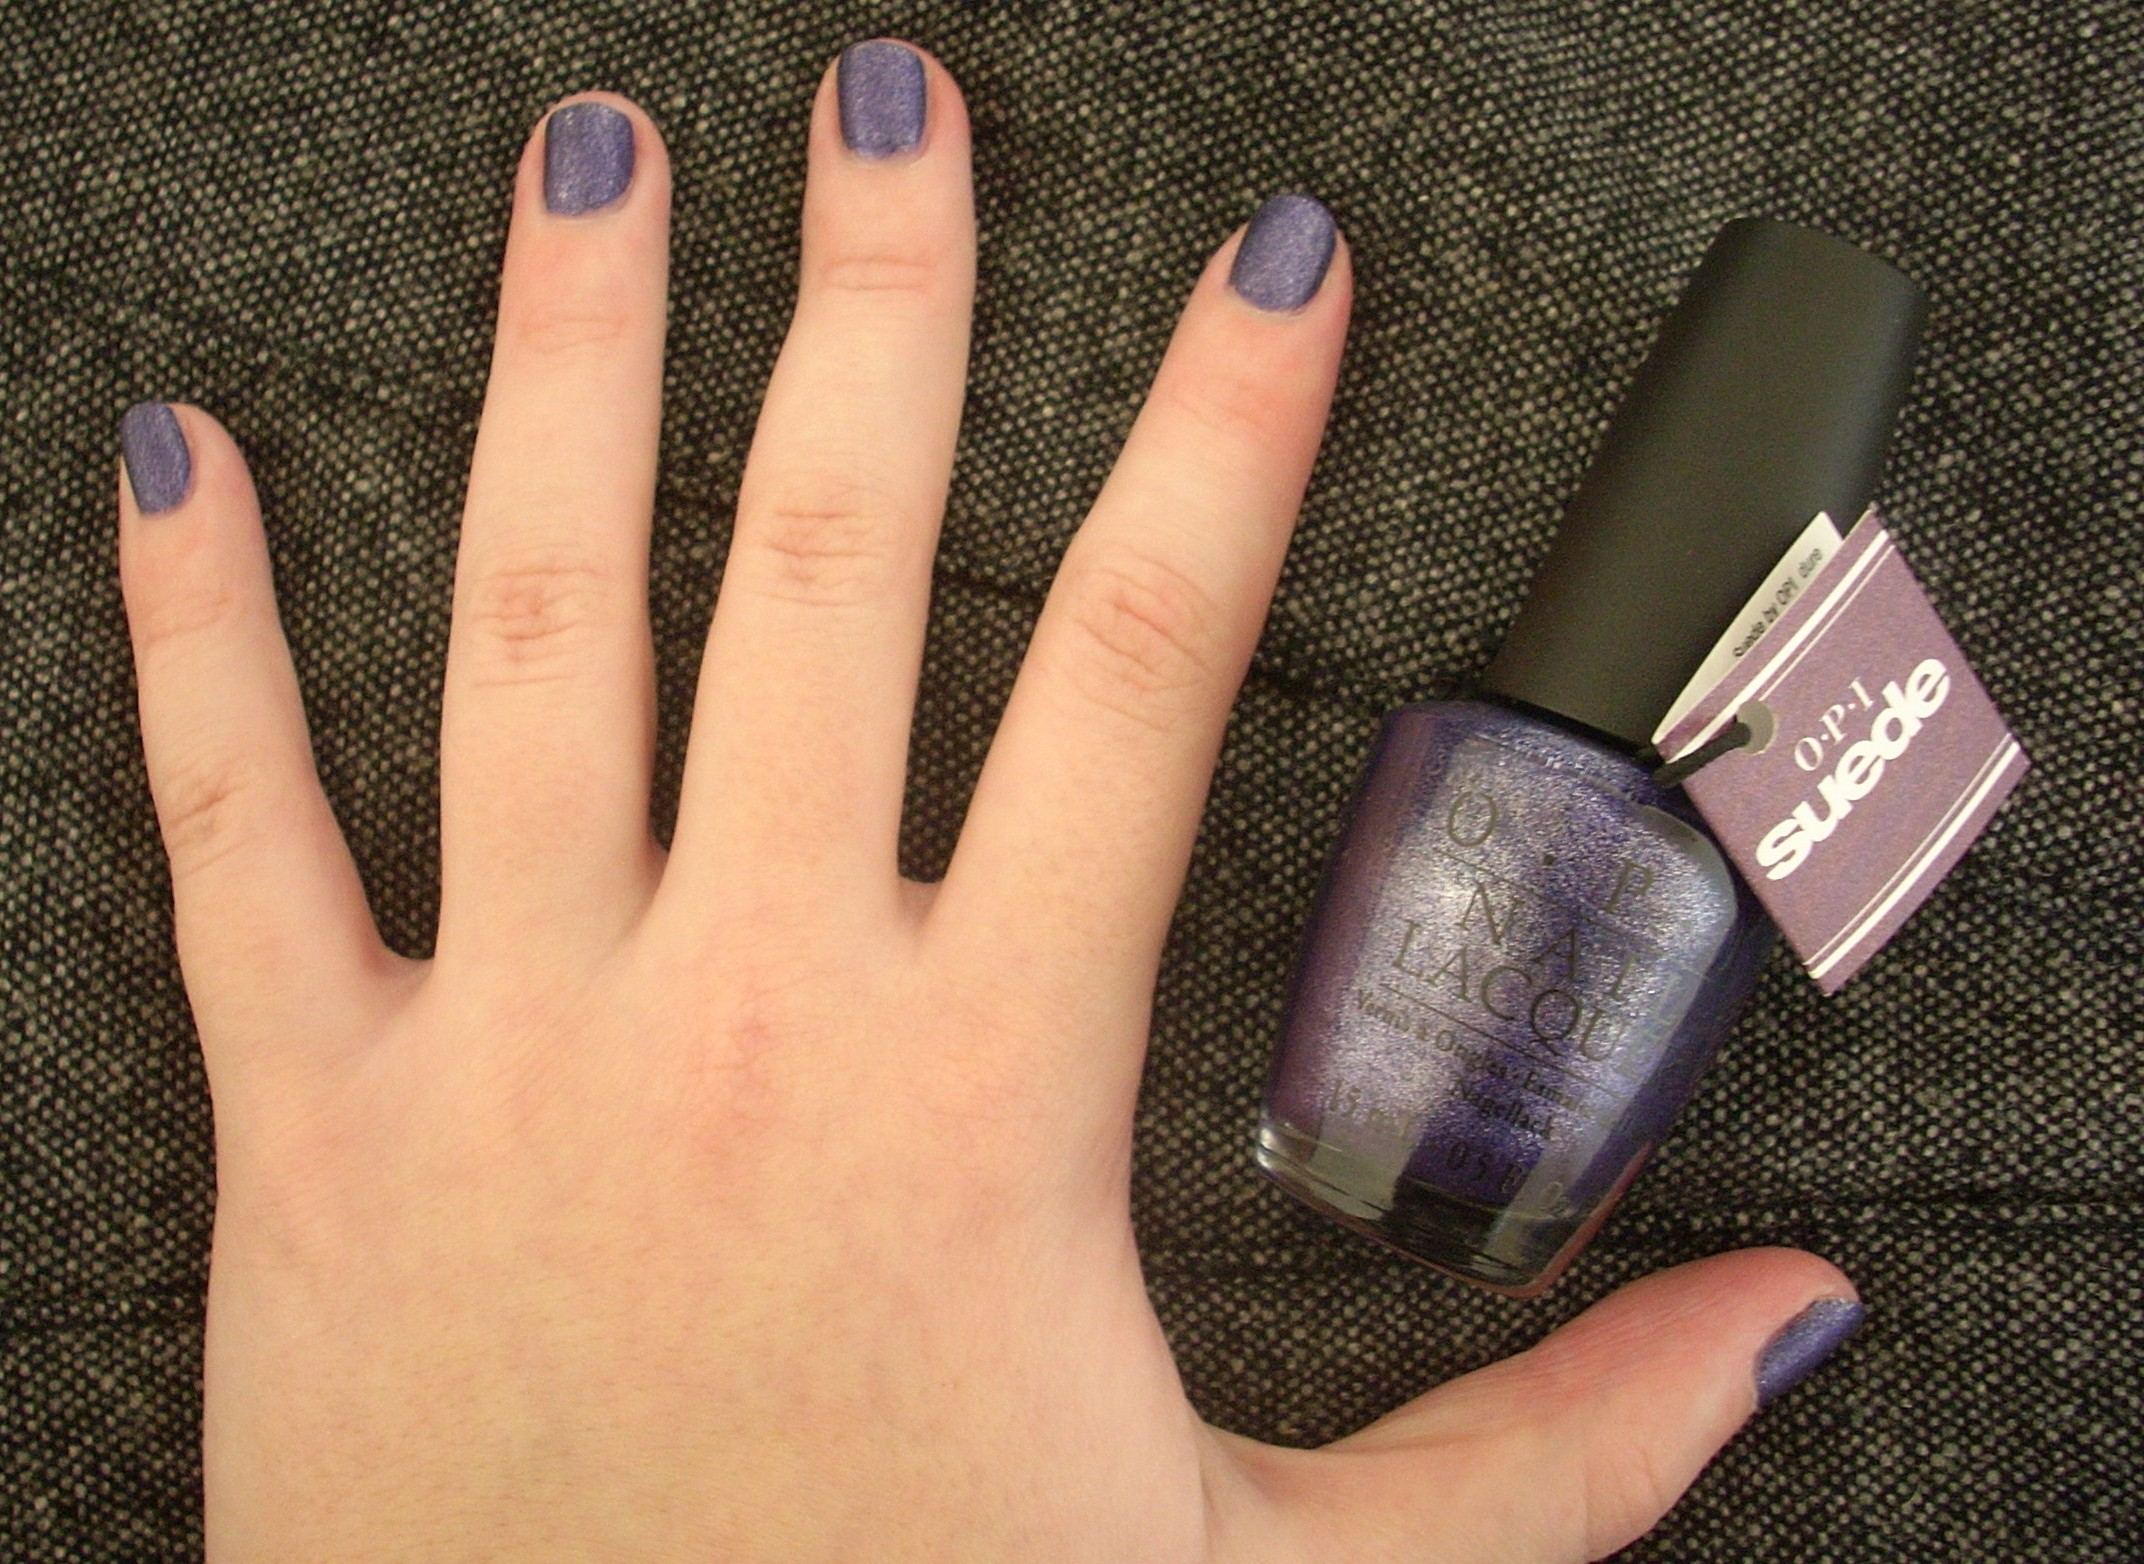 OPI Suede Ink nail polish review | Through The Looking Glass